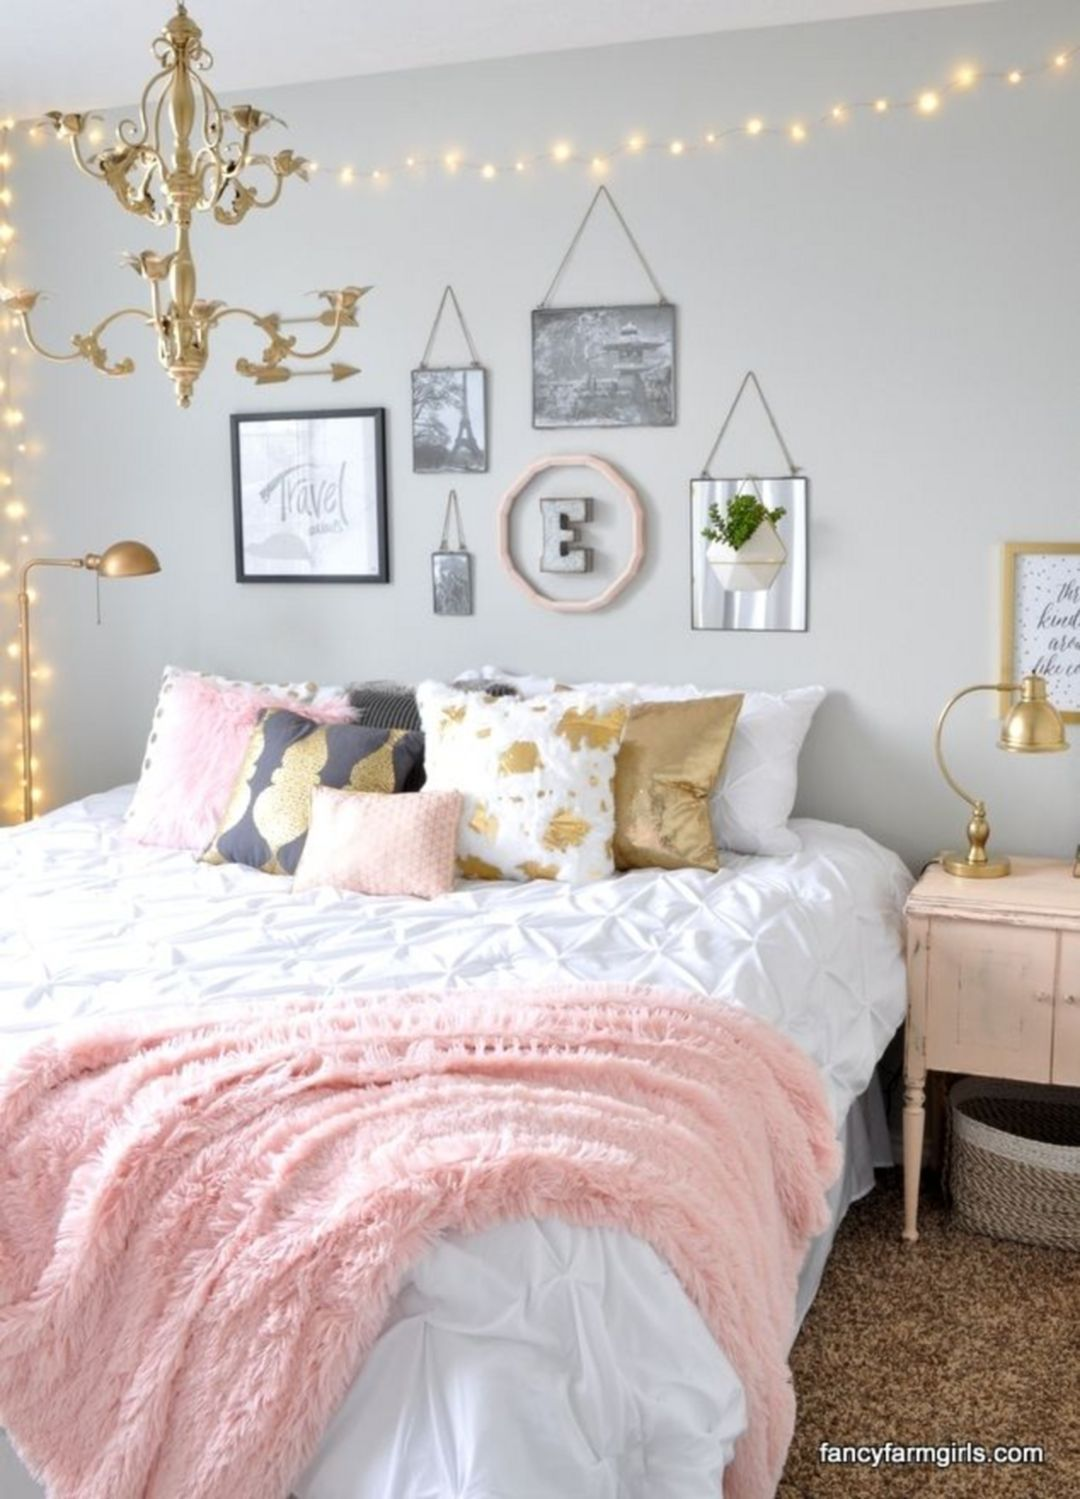 Pink Bedroom Room Design Ideas 210 images